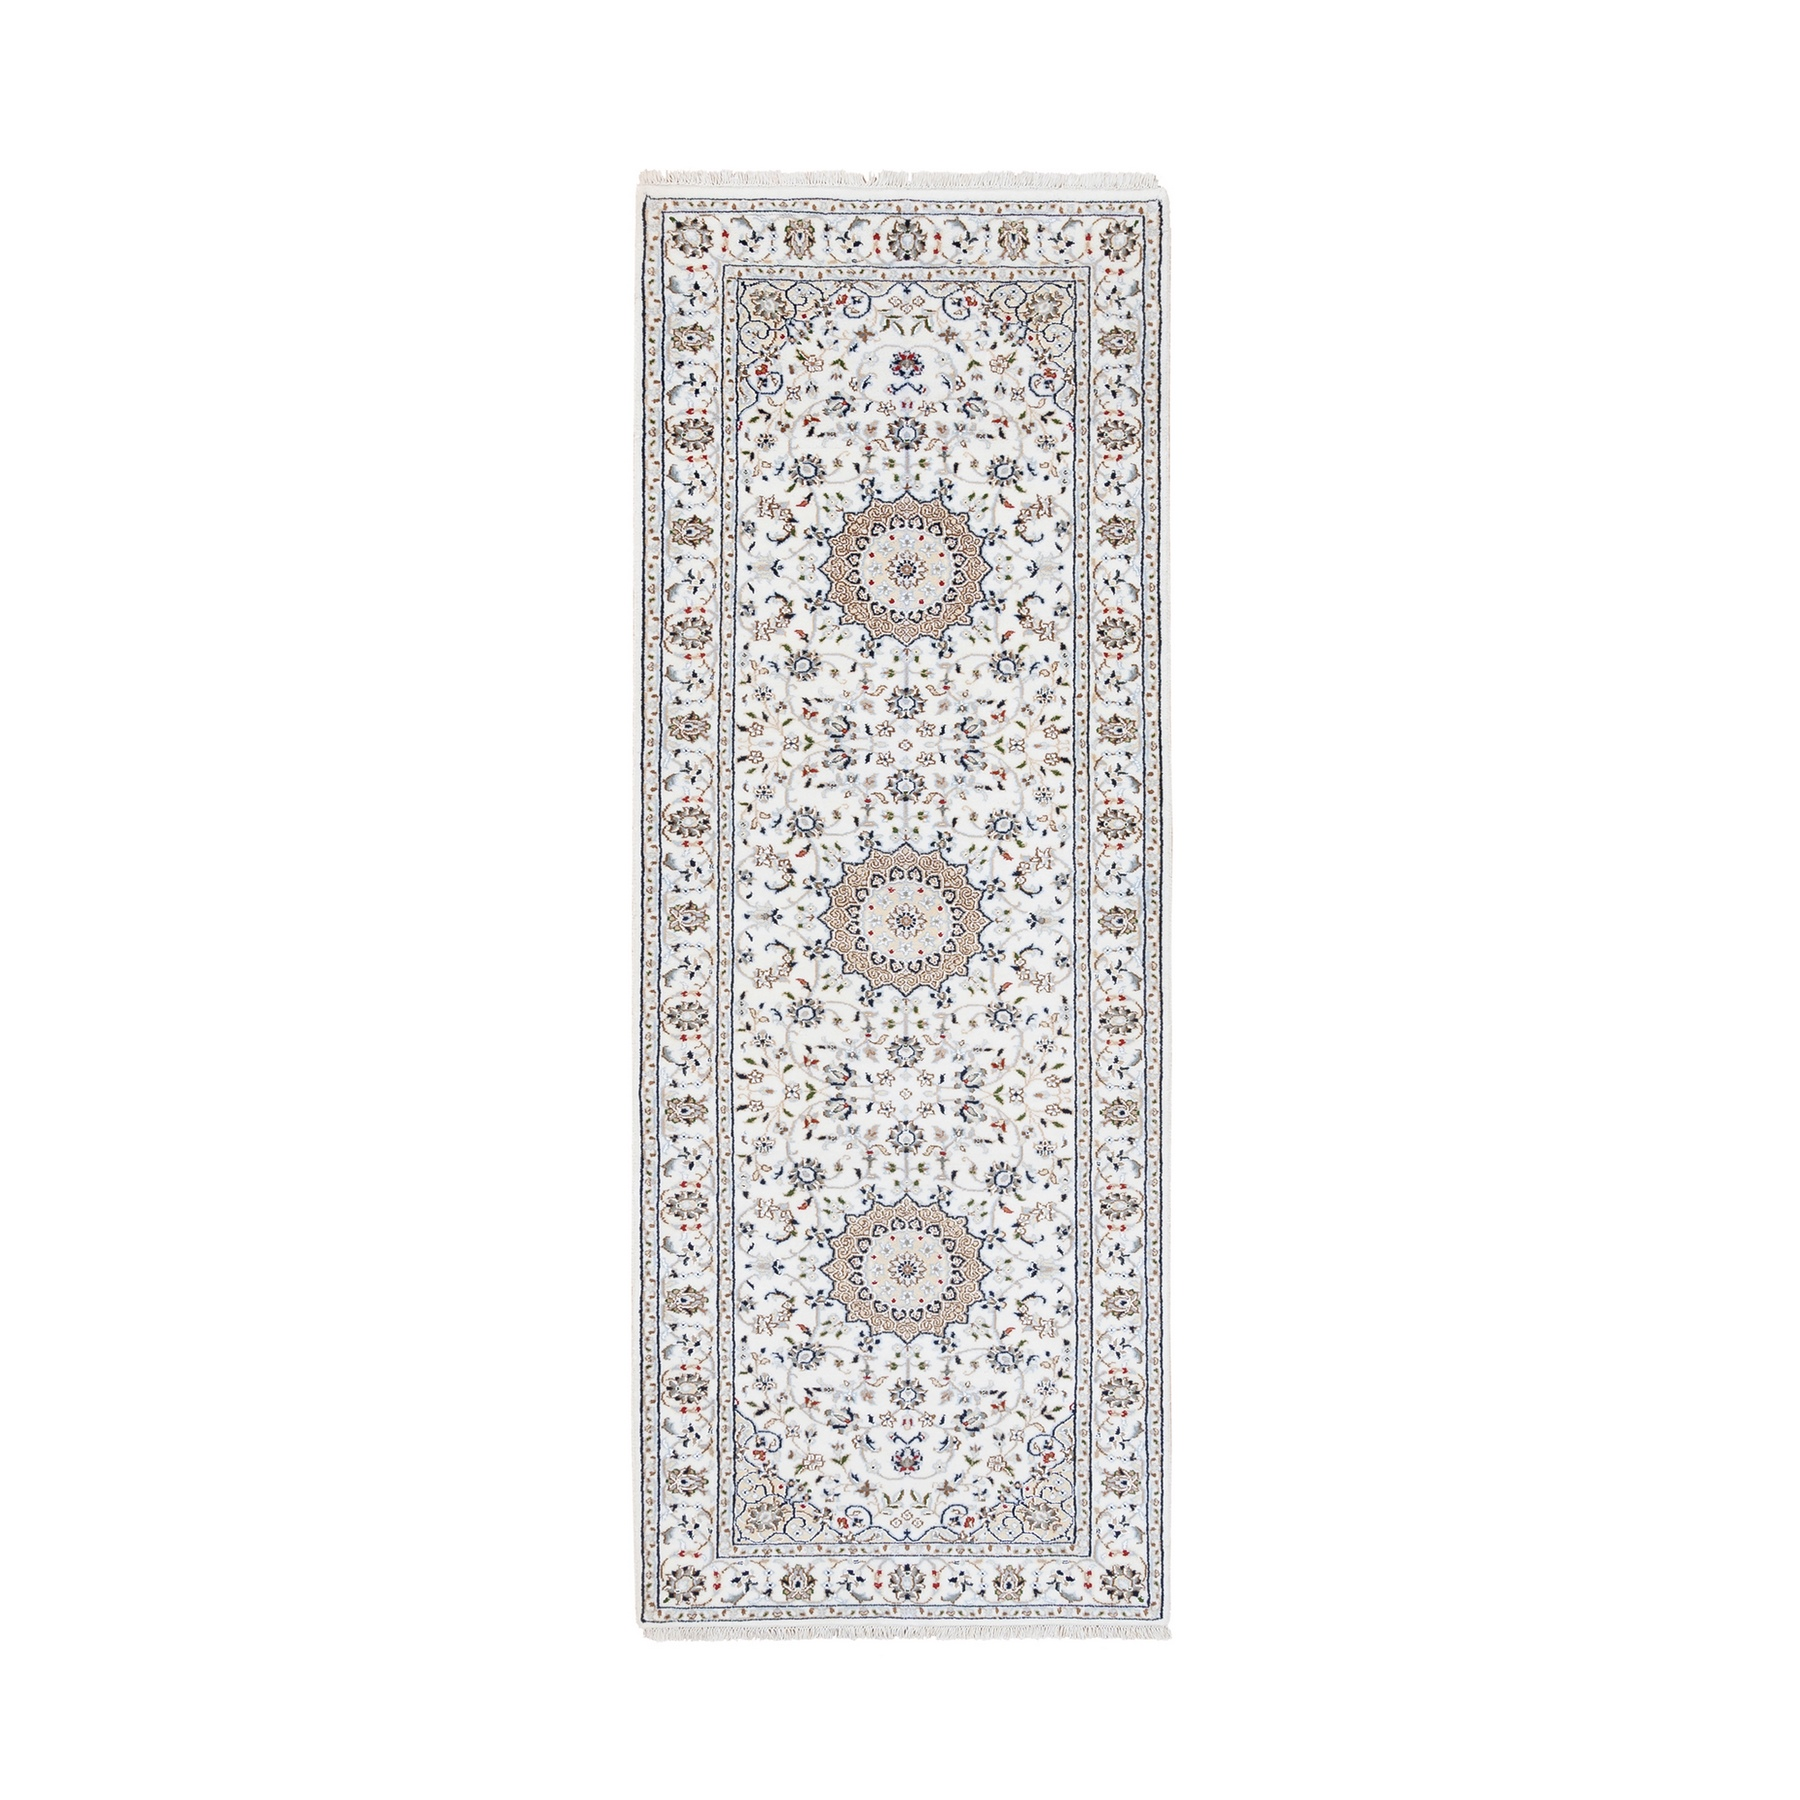 Pirniakan Collection Hand Knotted Ivory Rug No: 1126672